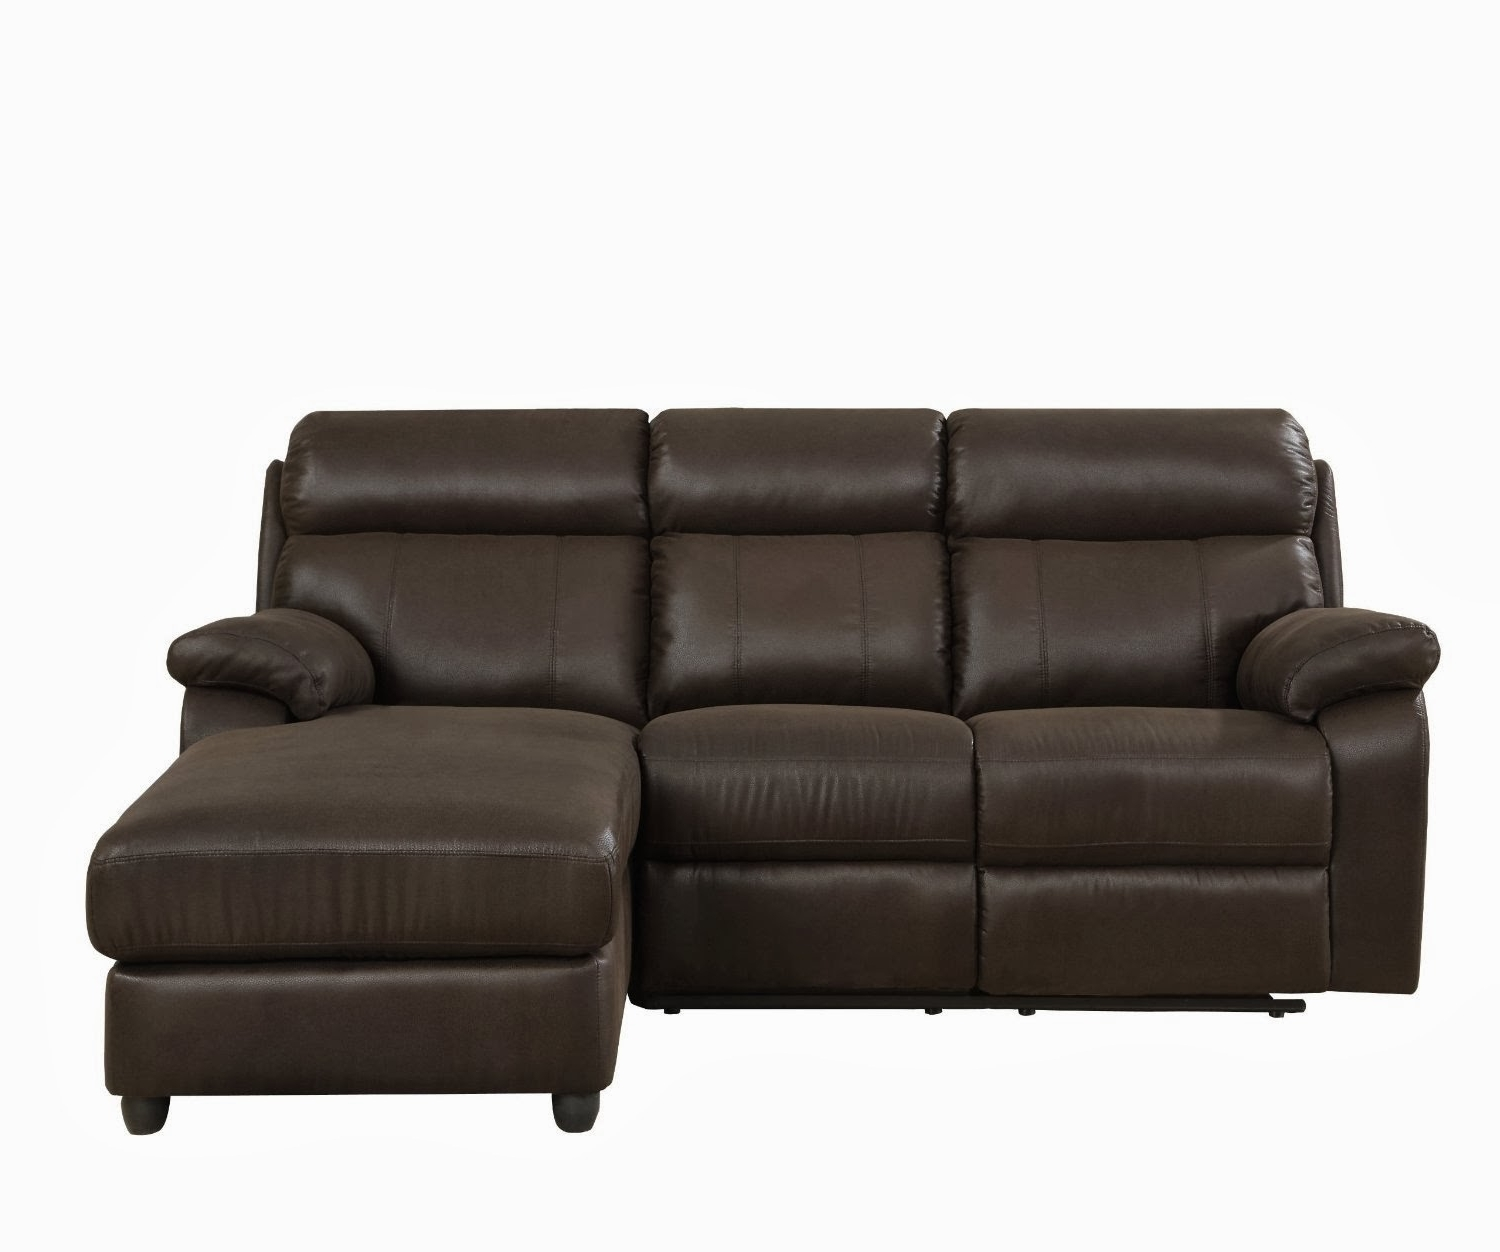 Popular Sectional Sofas With High Backs Within Small High Back Leather Sectional Sofa With Chaise For 3 – Decofurnish (View 16 of 20)